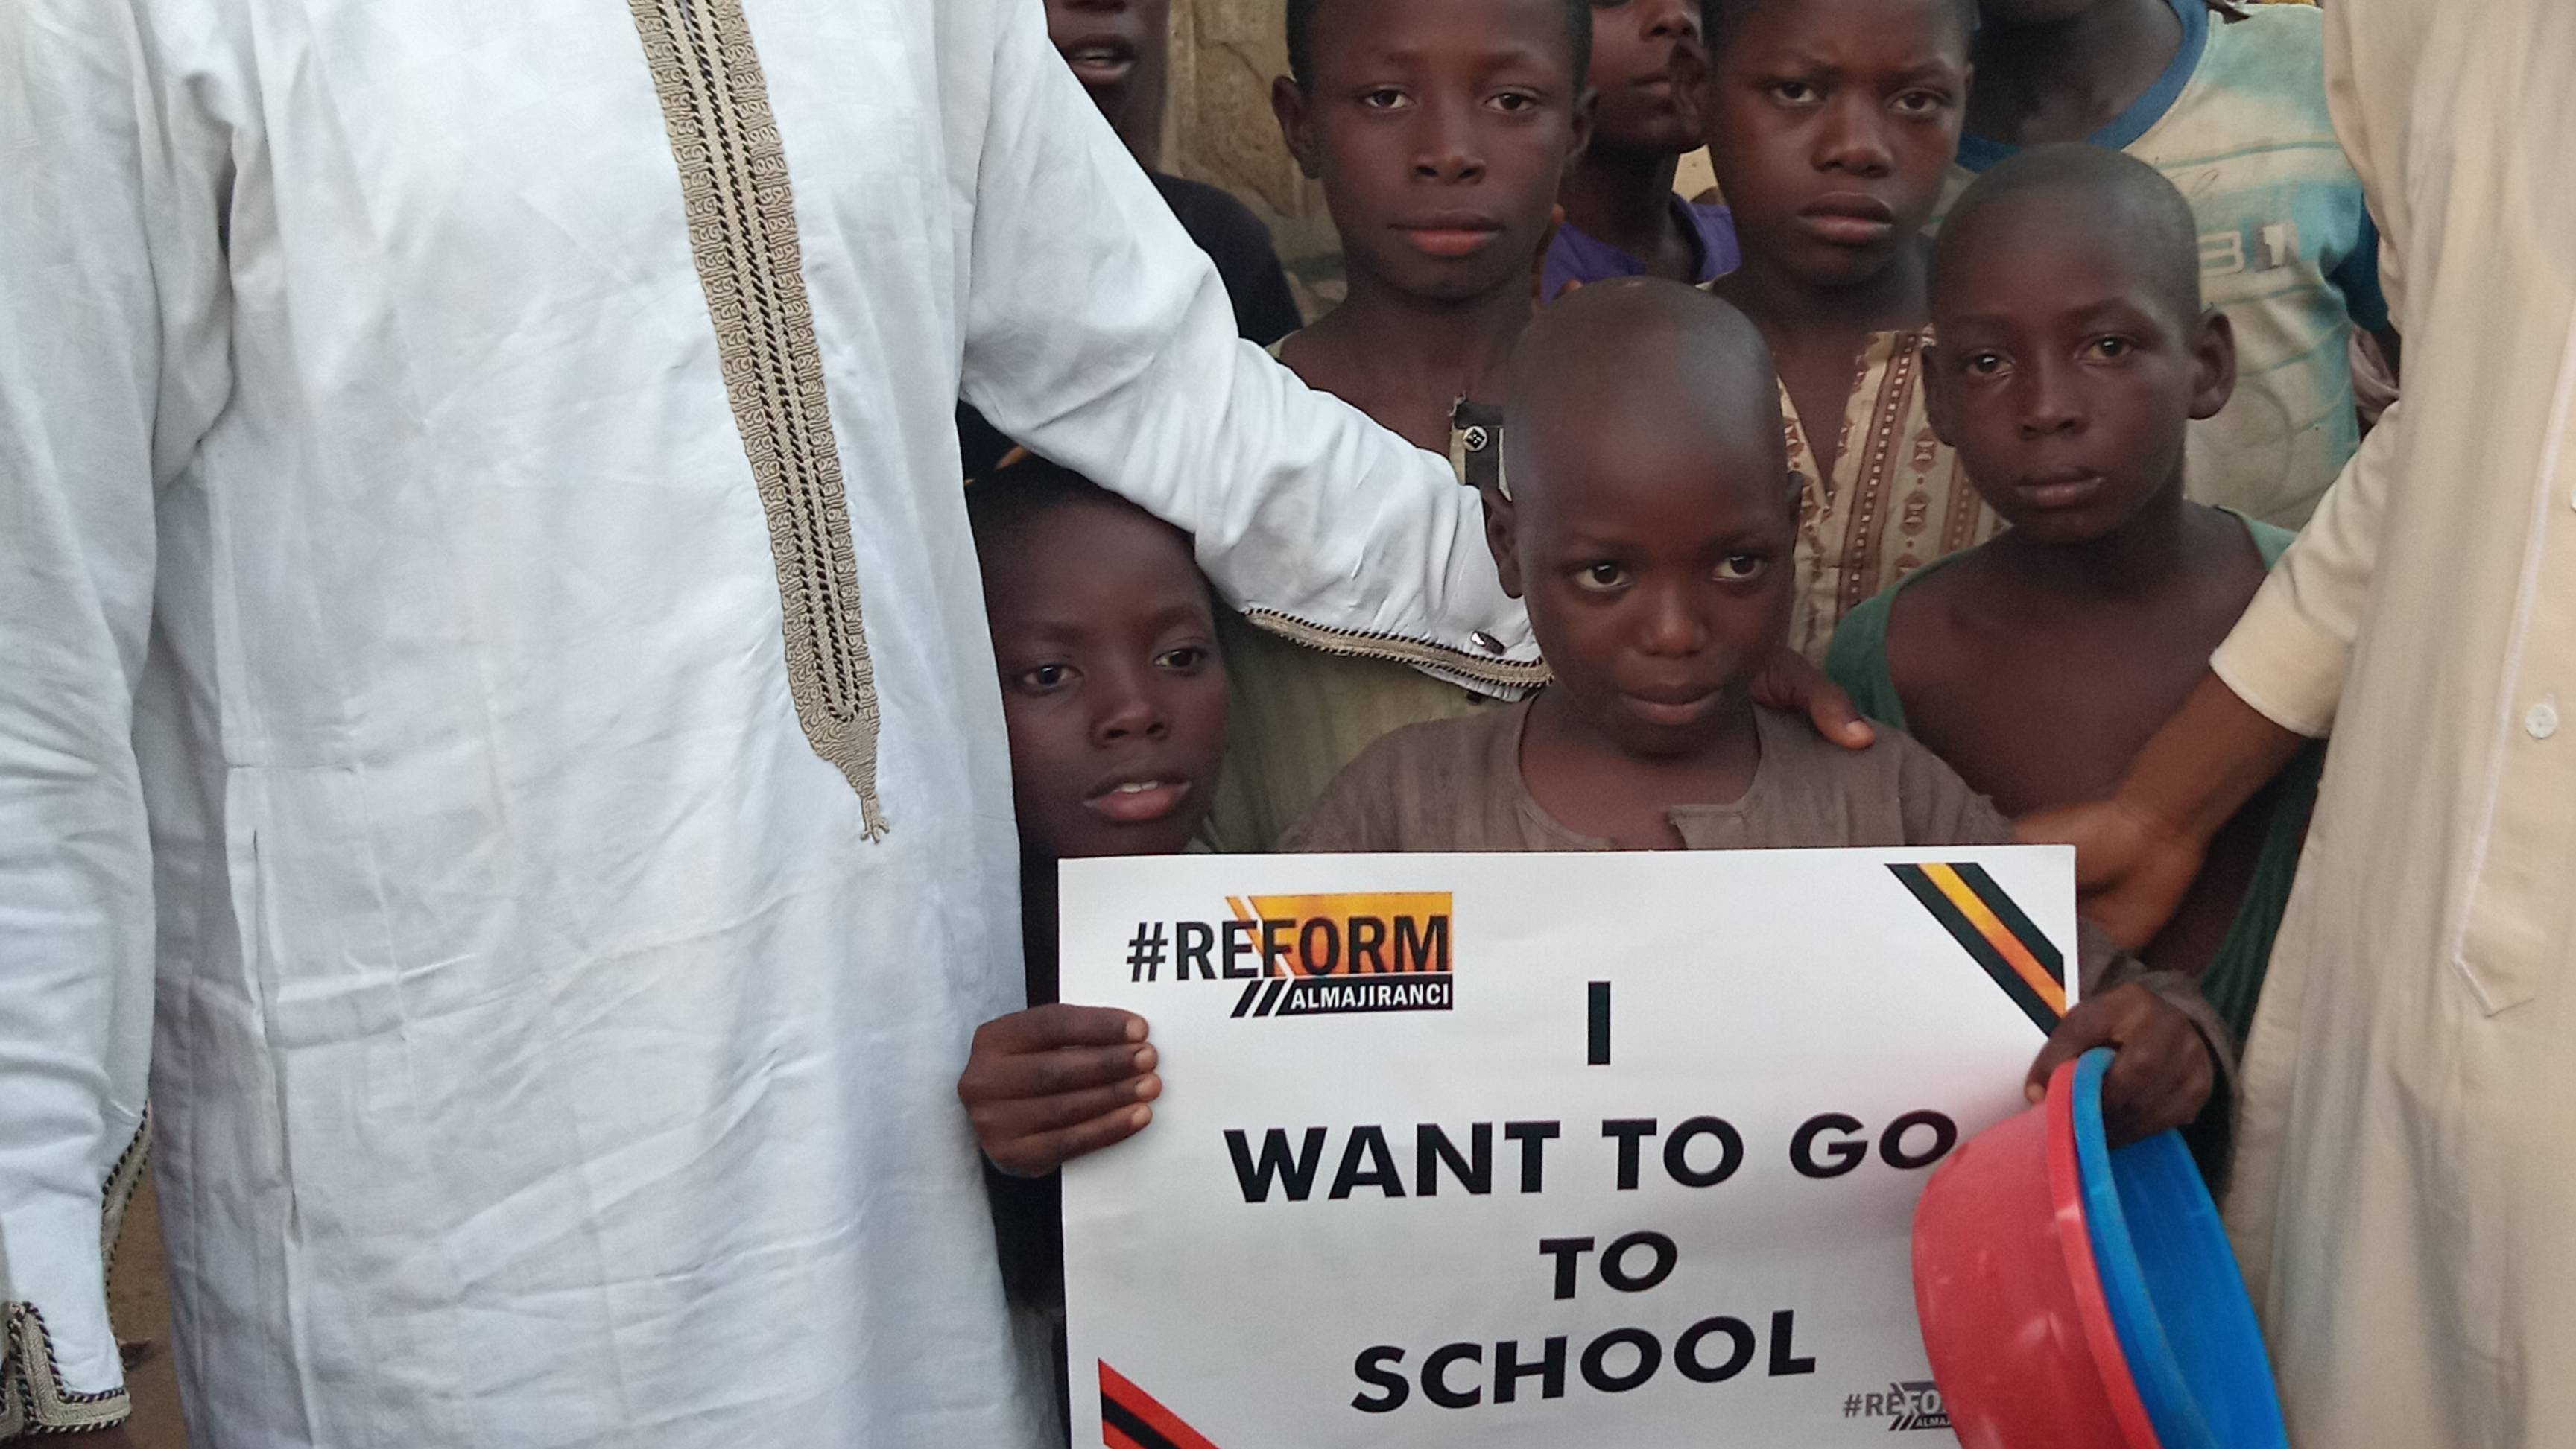 Give Orphans A Better Life - Upgrade and Renovate the School